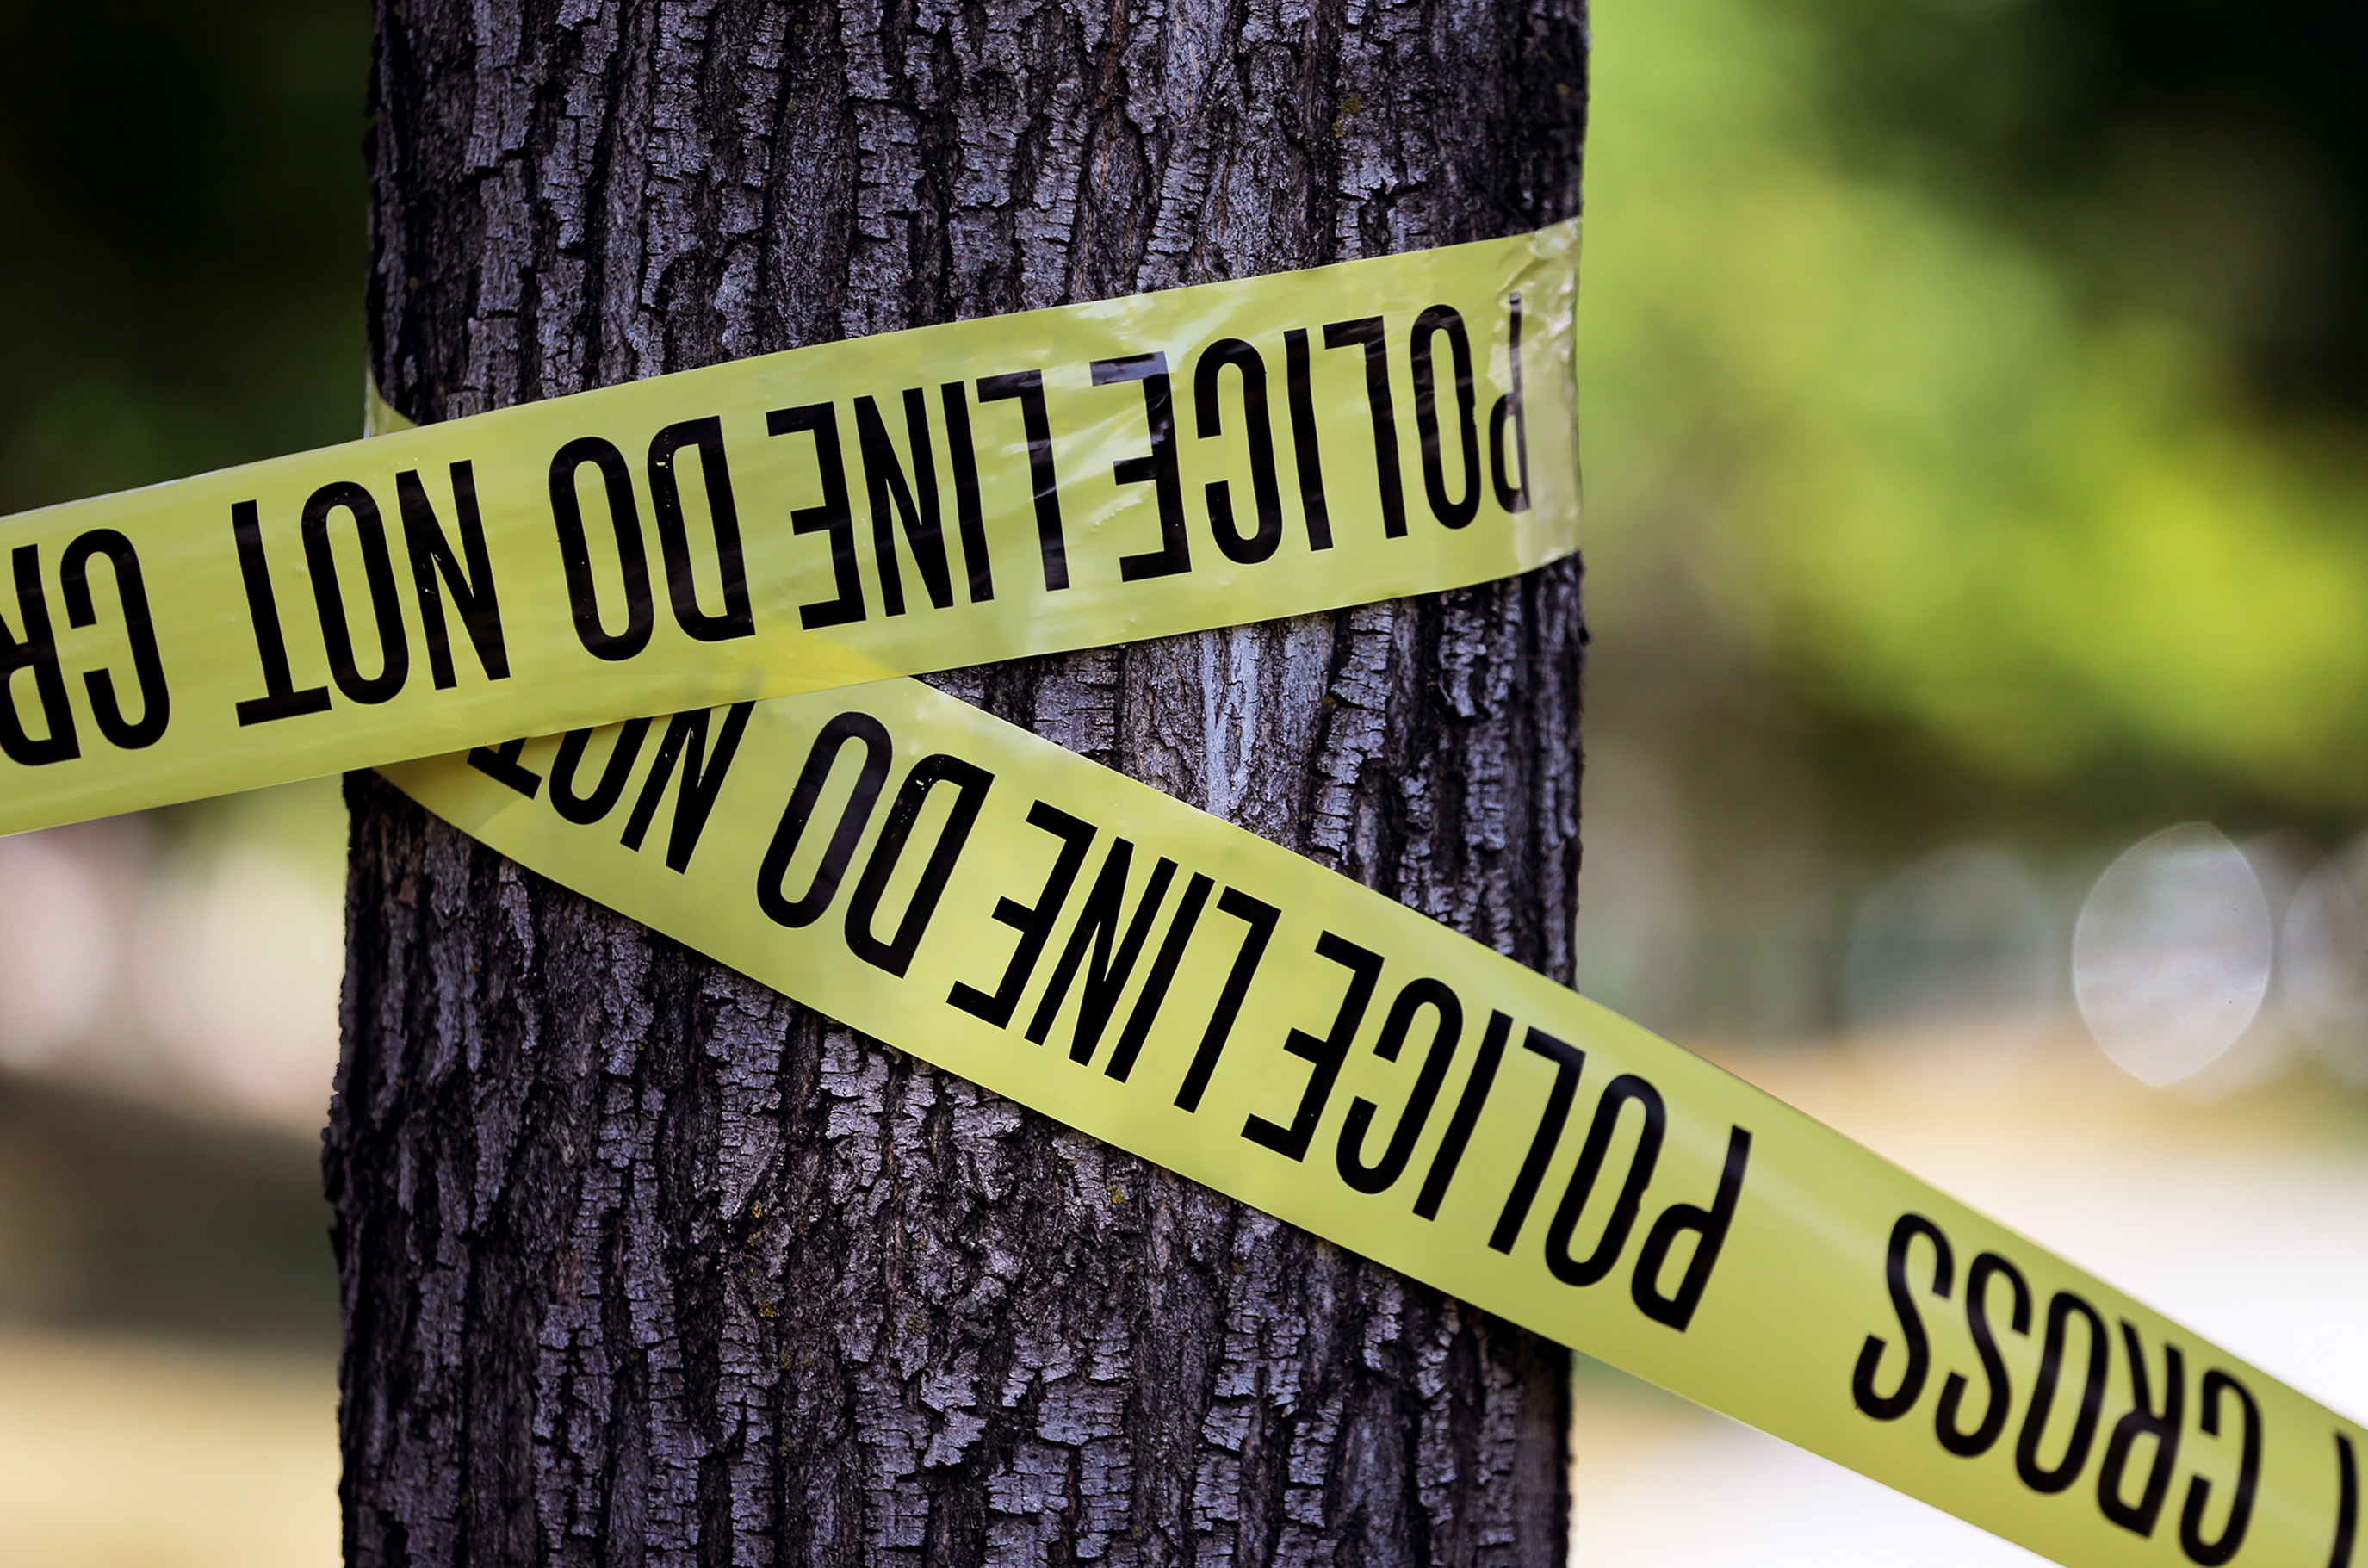 An Idaho woman died Saturday night after she was hit by a vehicle in Layton, police said.